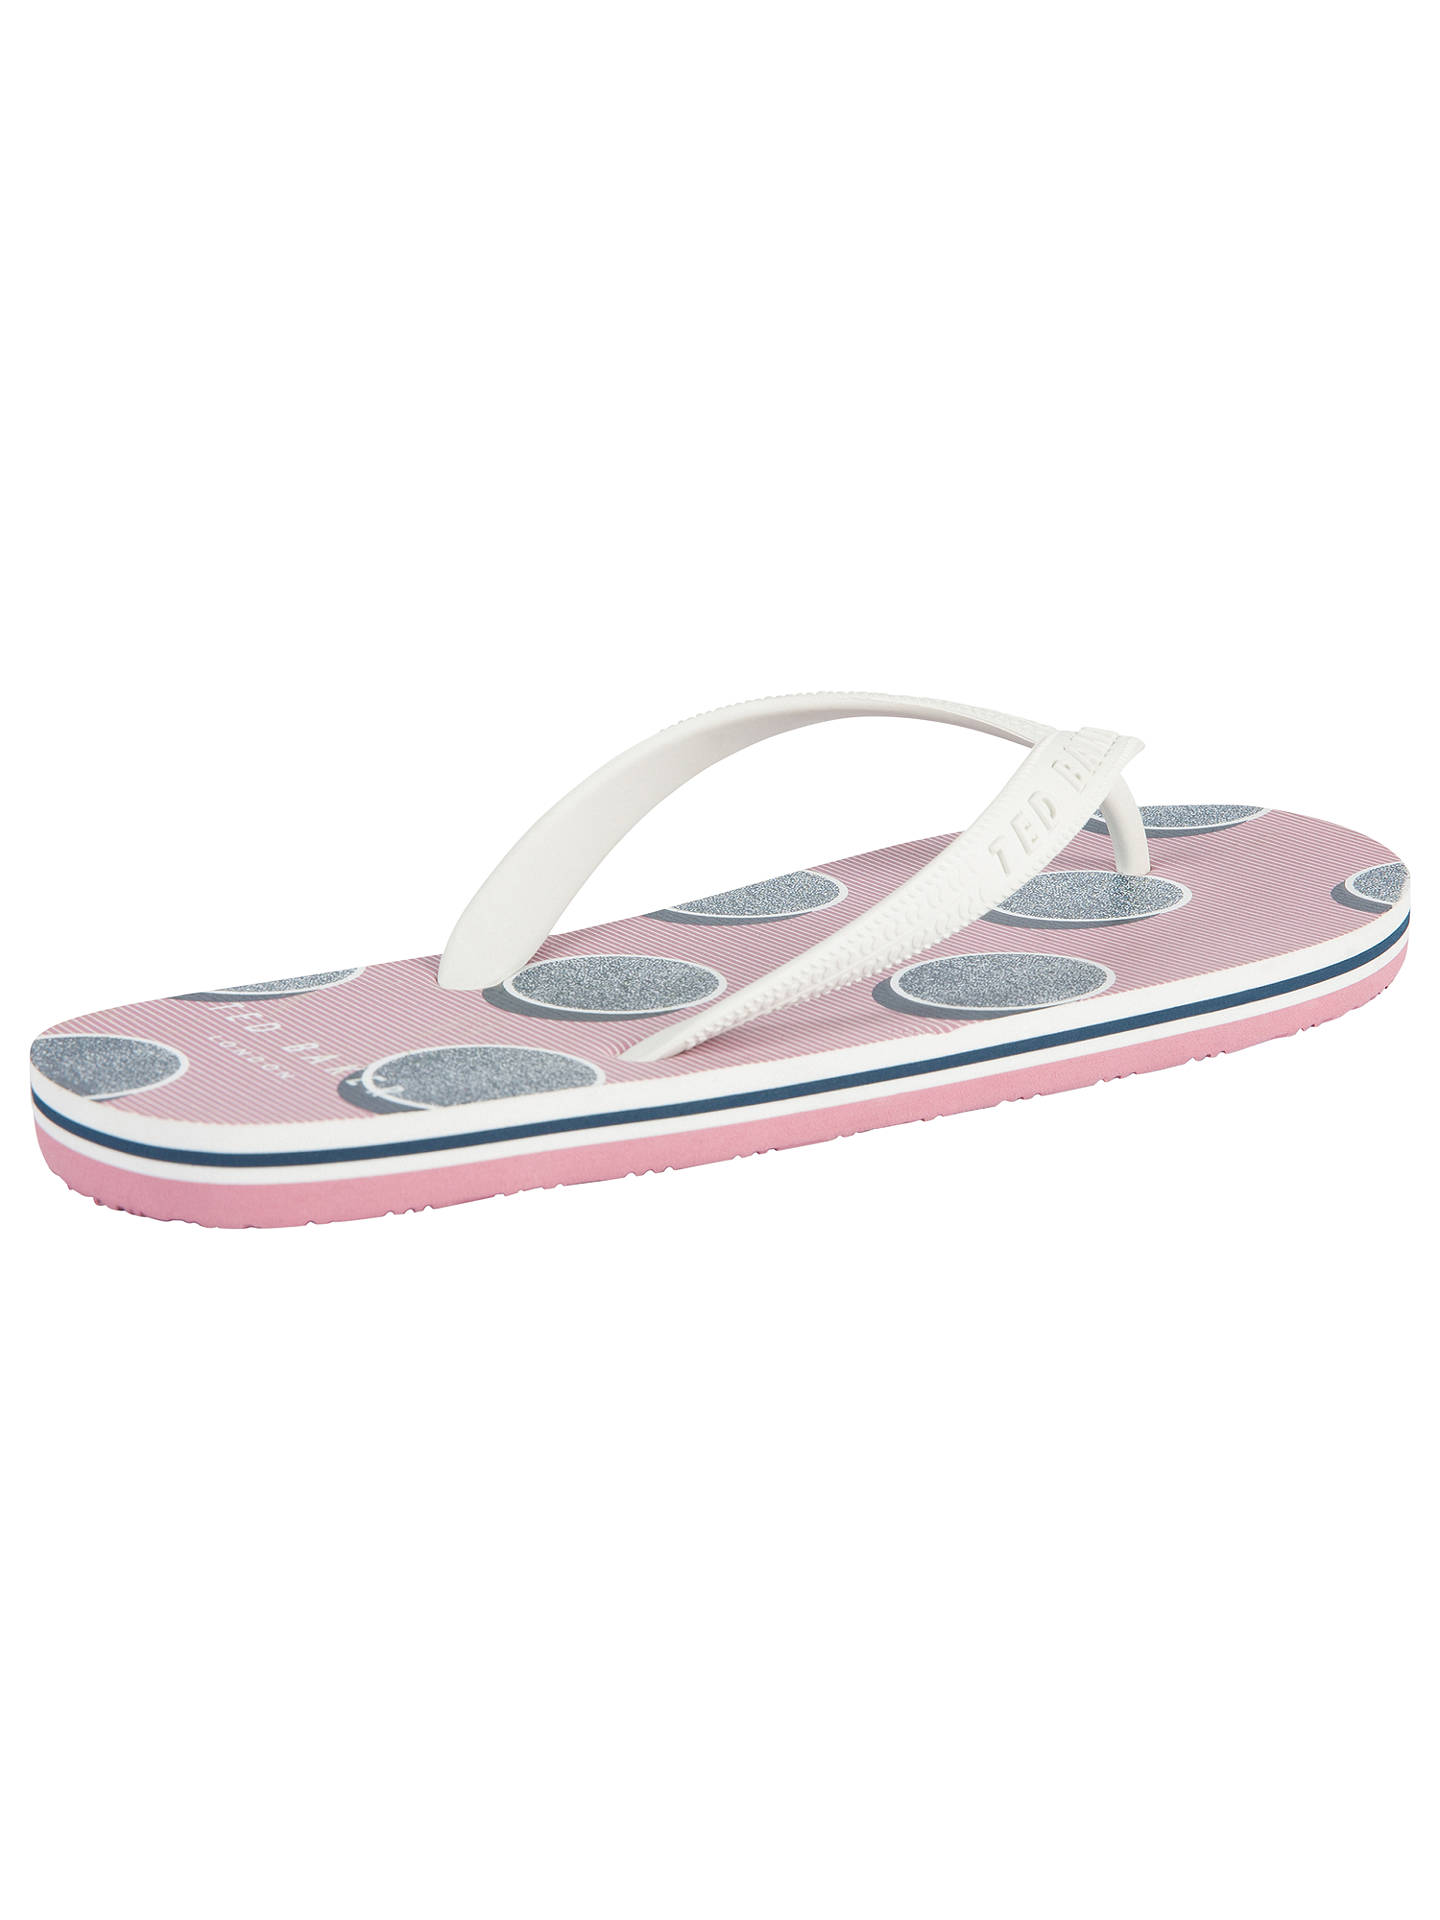 b679e8944 ... Buy Ted Baker Flyxx Toe Post Sandals